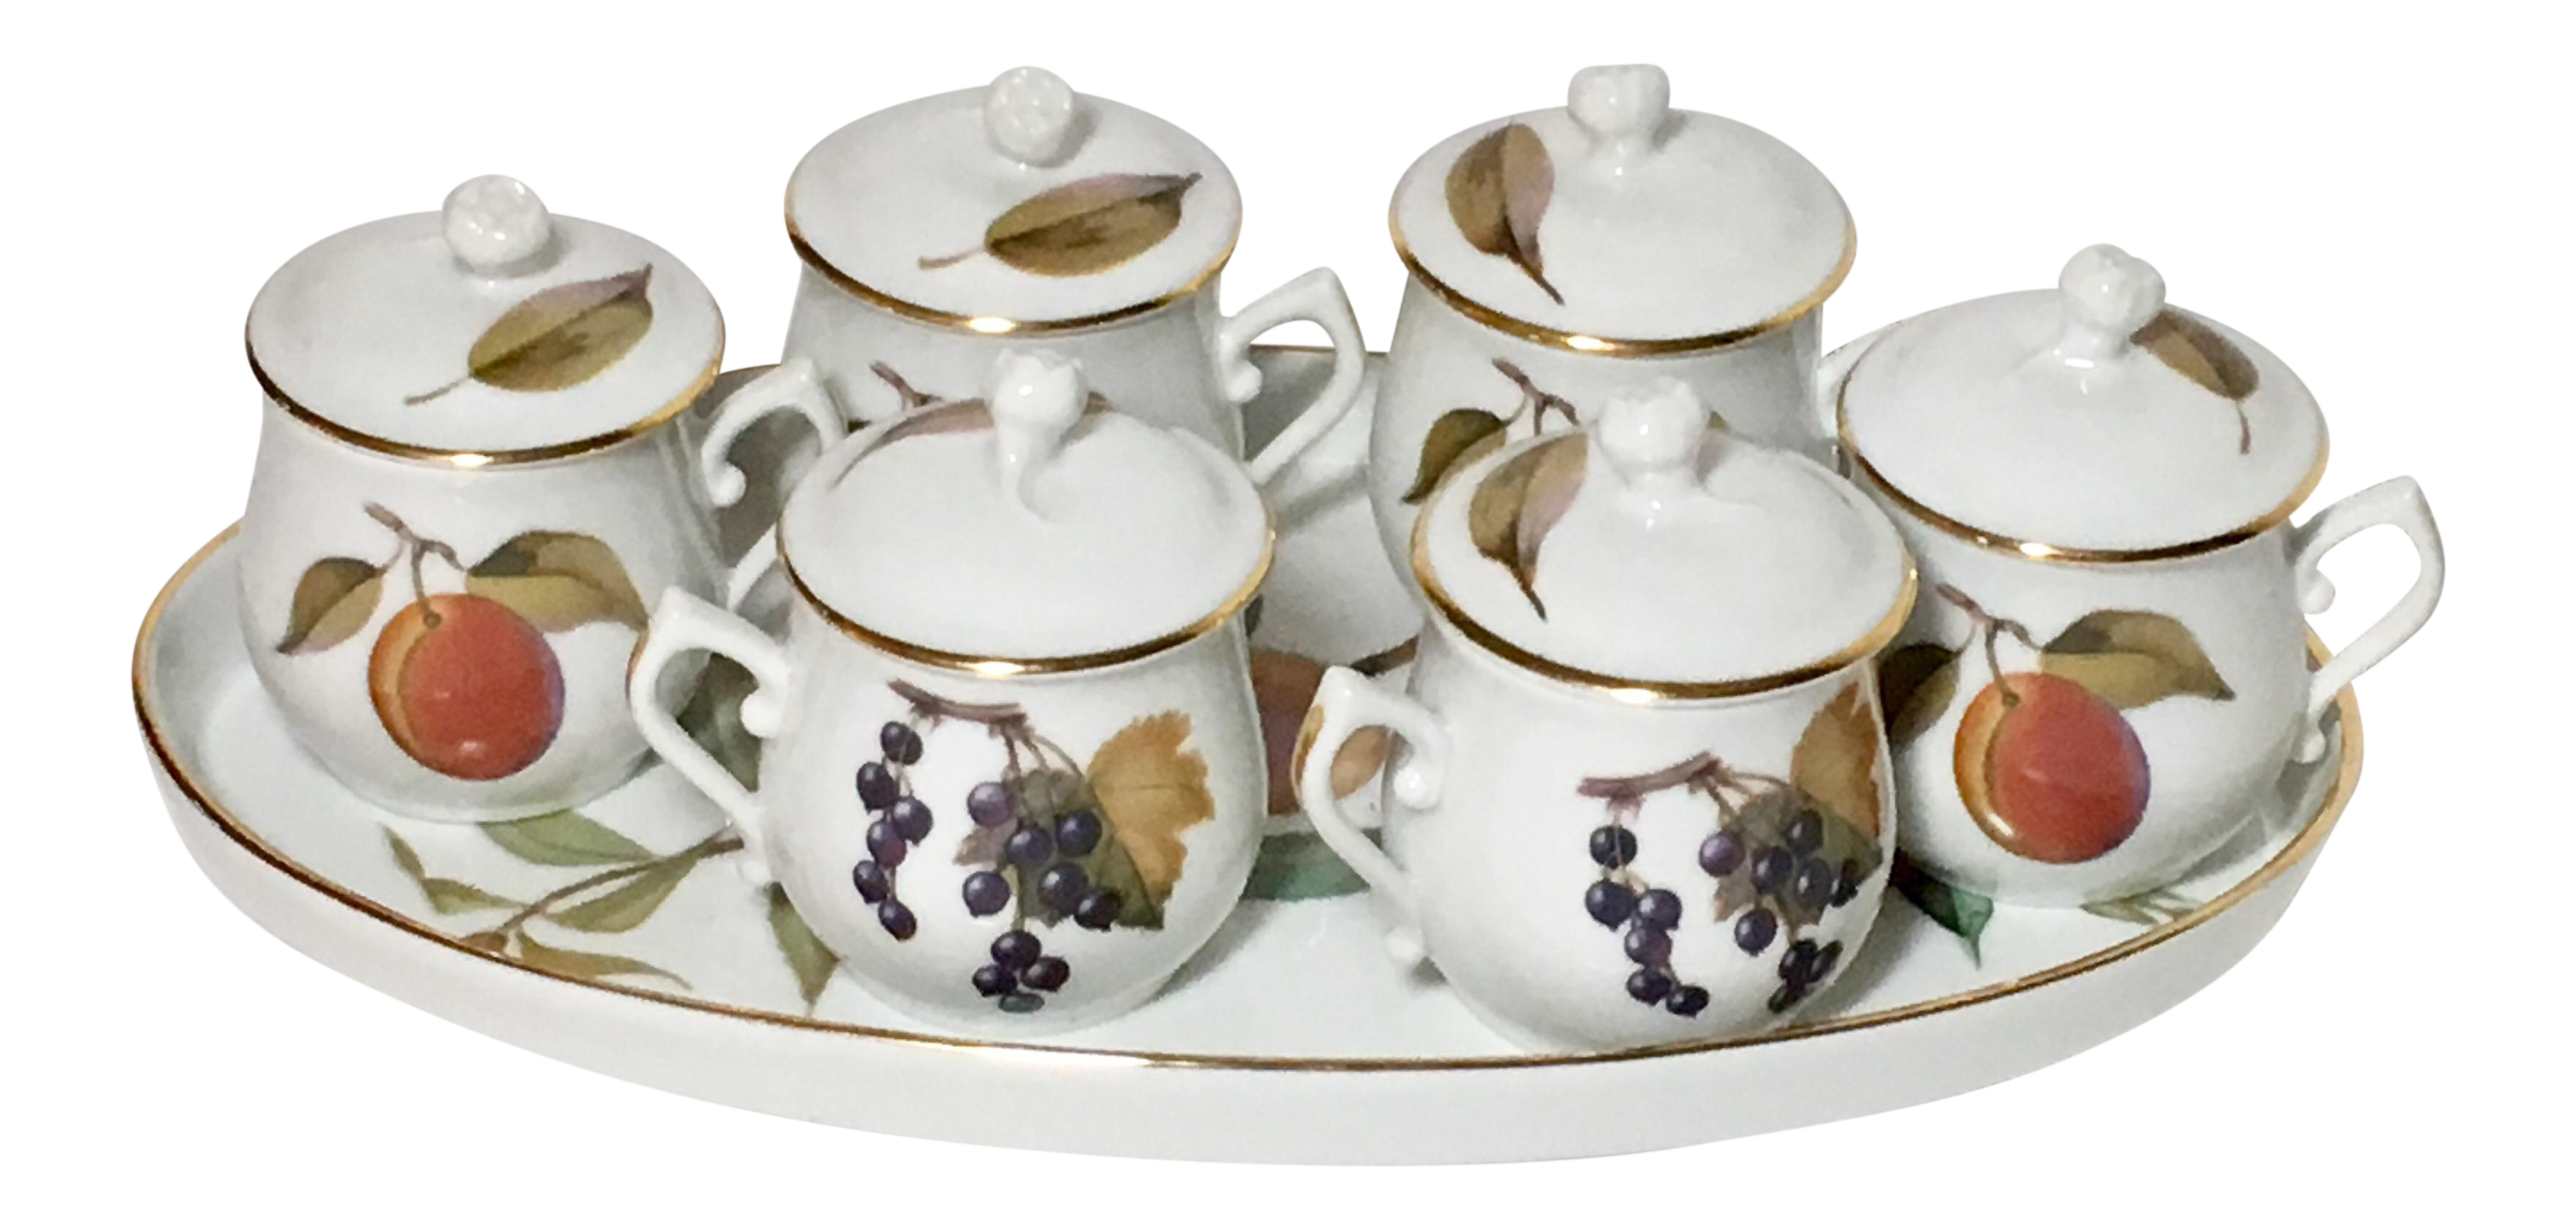 Royal Worcester Posset Cups u0026 Tray Evesham Service - Set of 7  sc 1 st  Chairish & Royal Worcester Posset Cups u0026 Tray Evesham Service - Set of 7 | Chairish